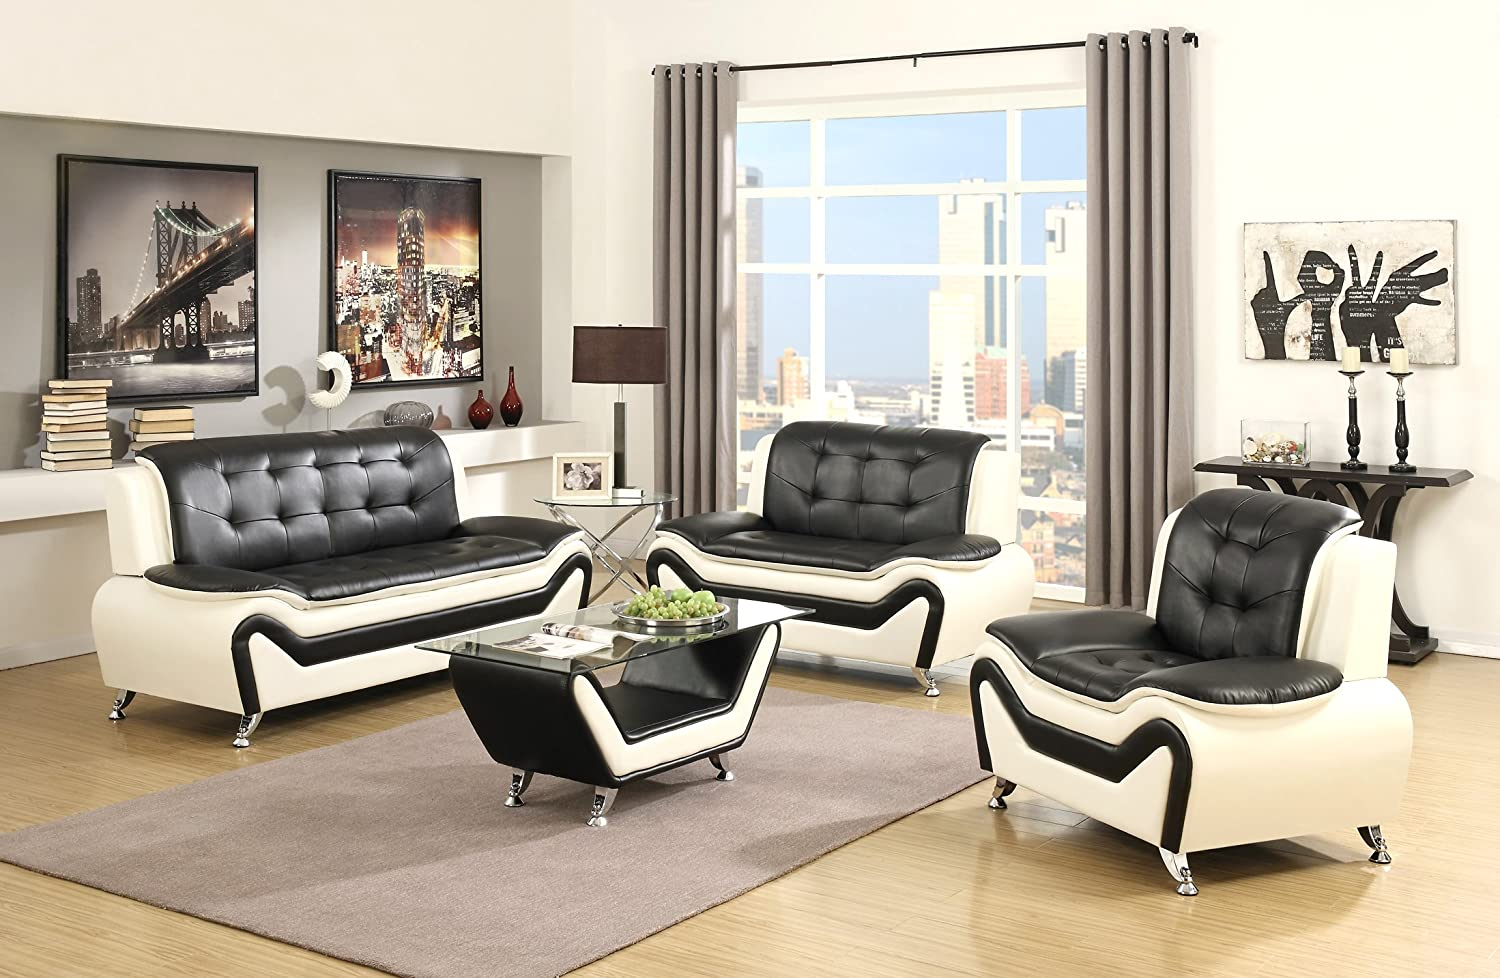 amazoncom us pride furniture 3 piece modern bonded leather sofa set with sofa loveseat and chair whiteblack kitchen u0026 dining